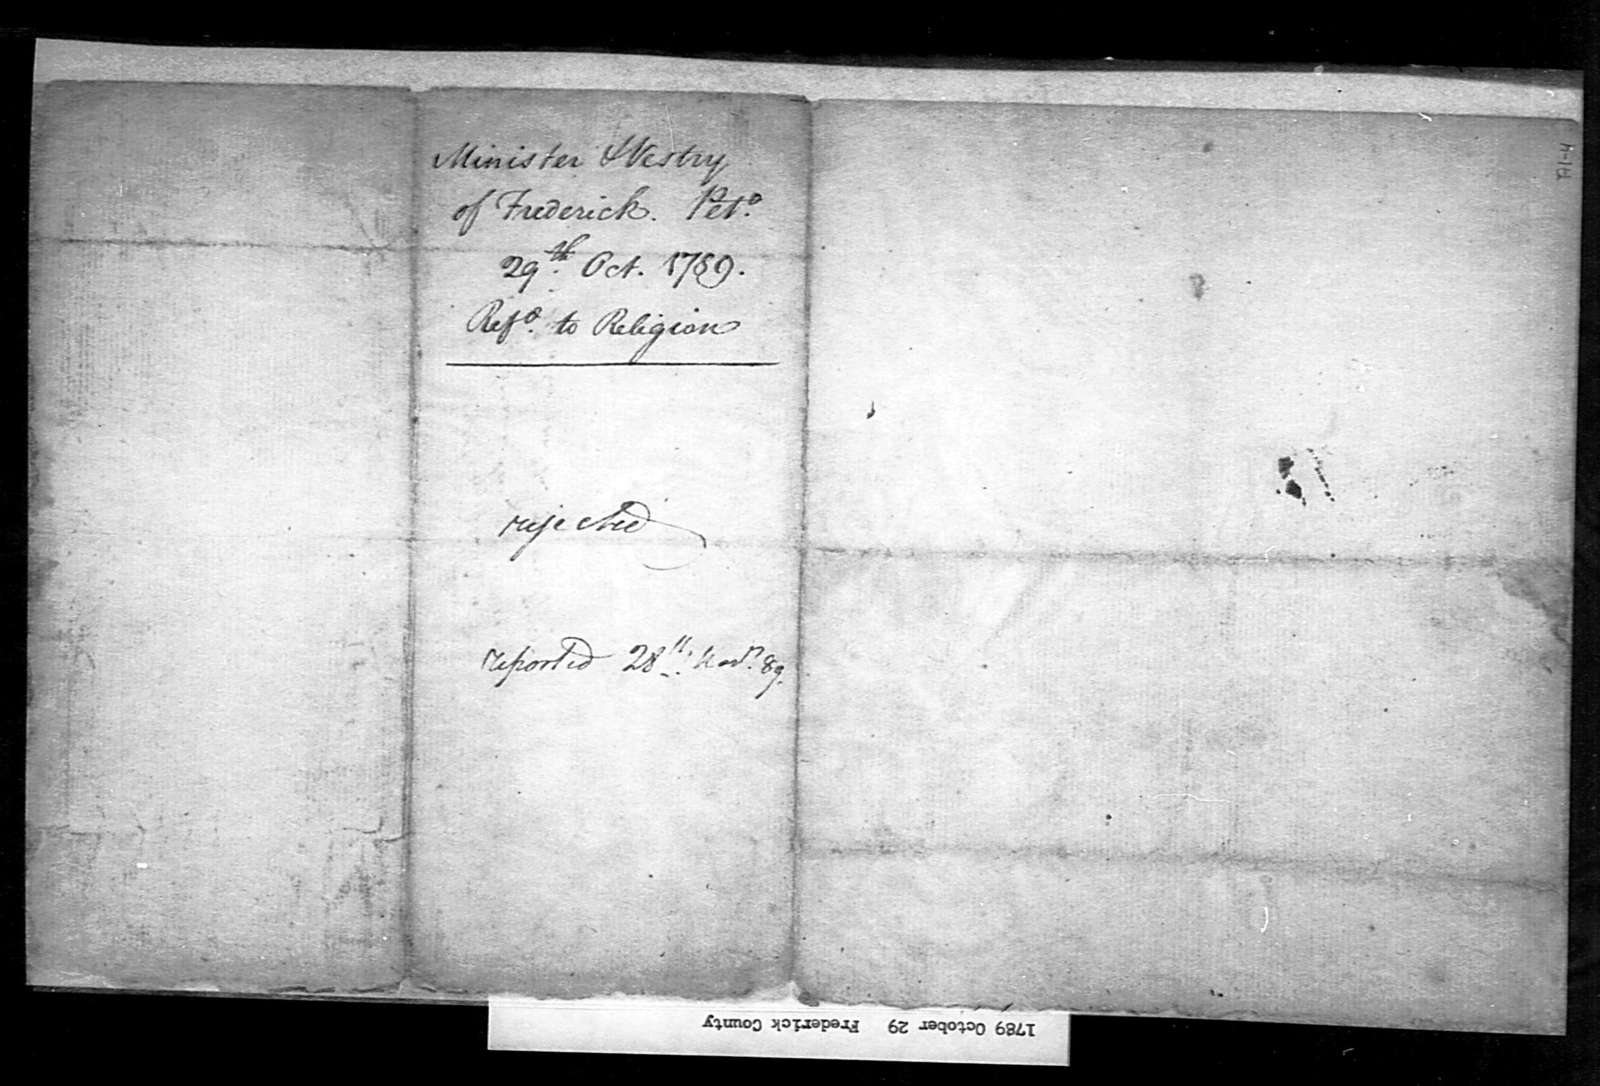 October 29, 1789, Frederick, Frederick Parish, for act to permit reopening of lawsuits against John Nevill, who absconded with church funds.